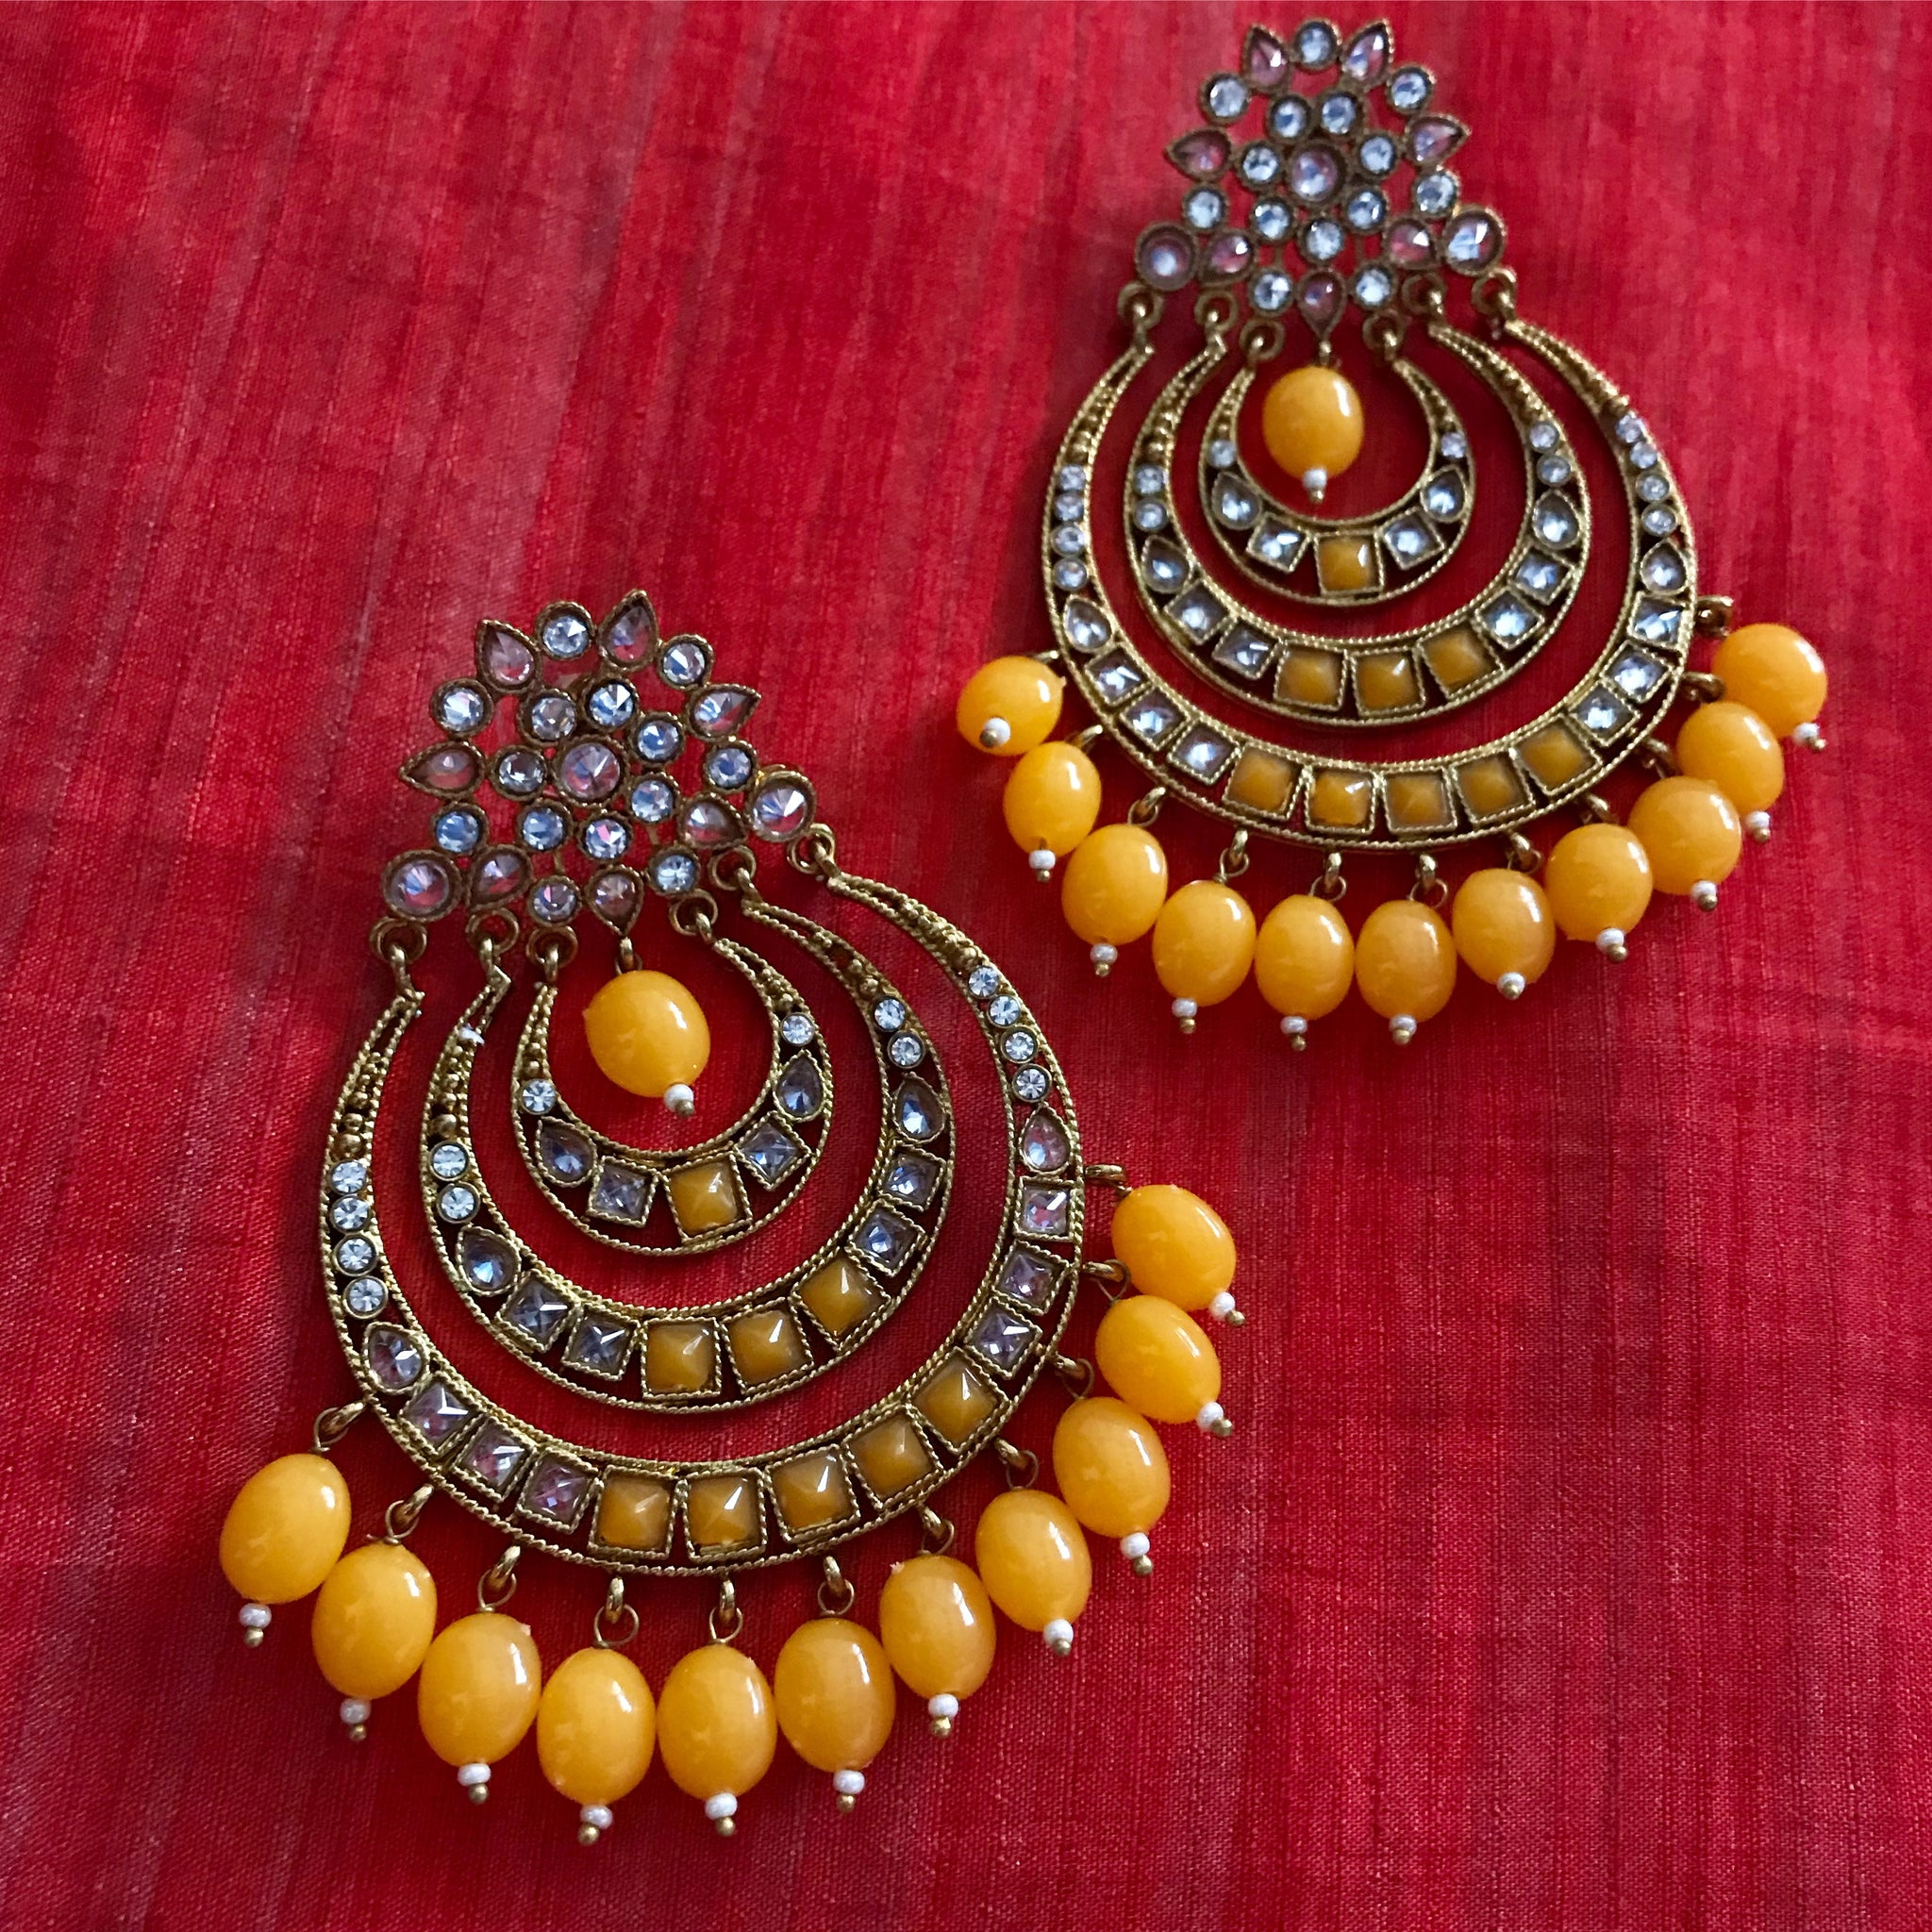 EXQUISITE BEADED CHANDBALIS